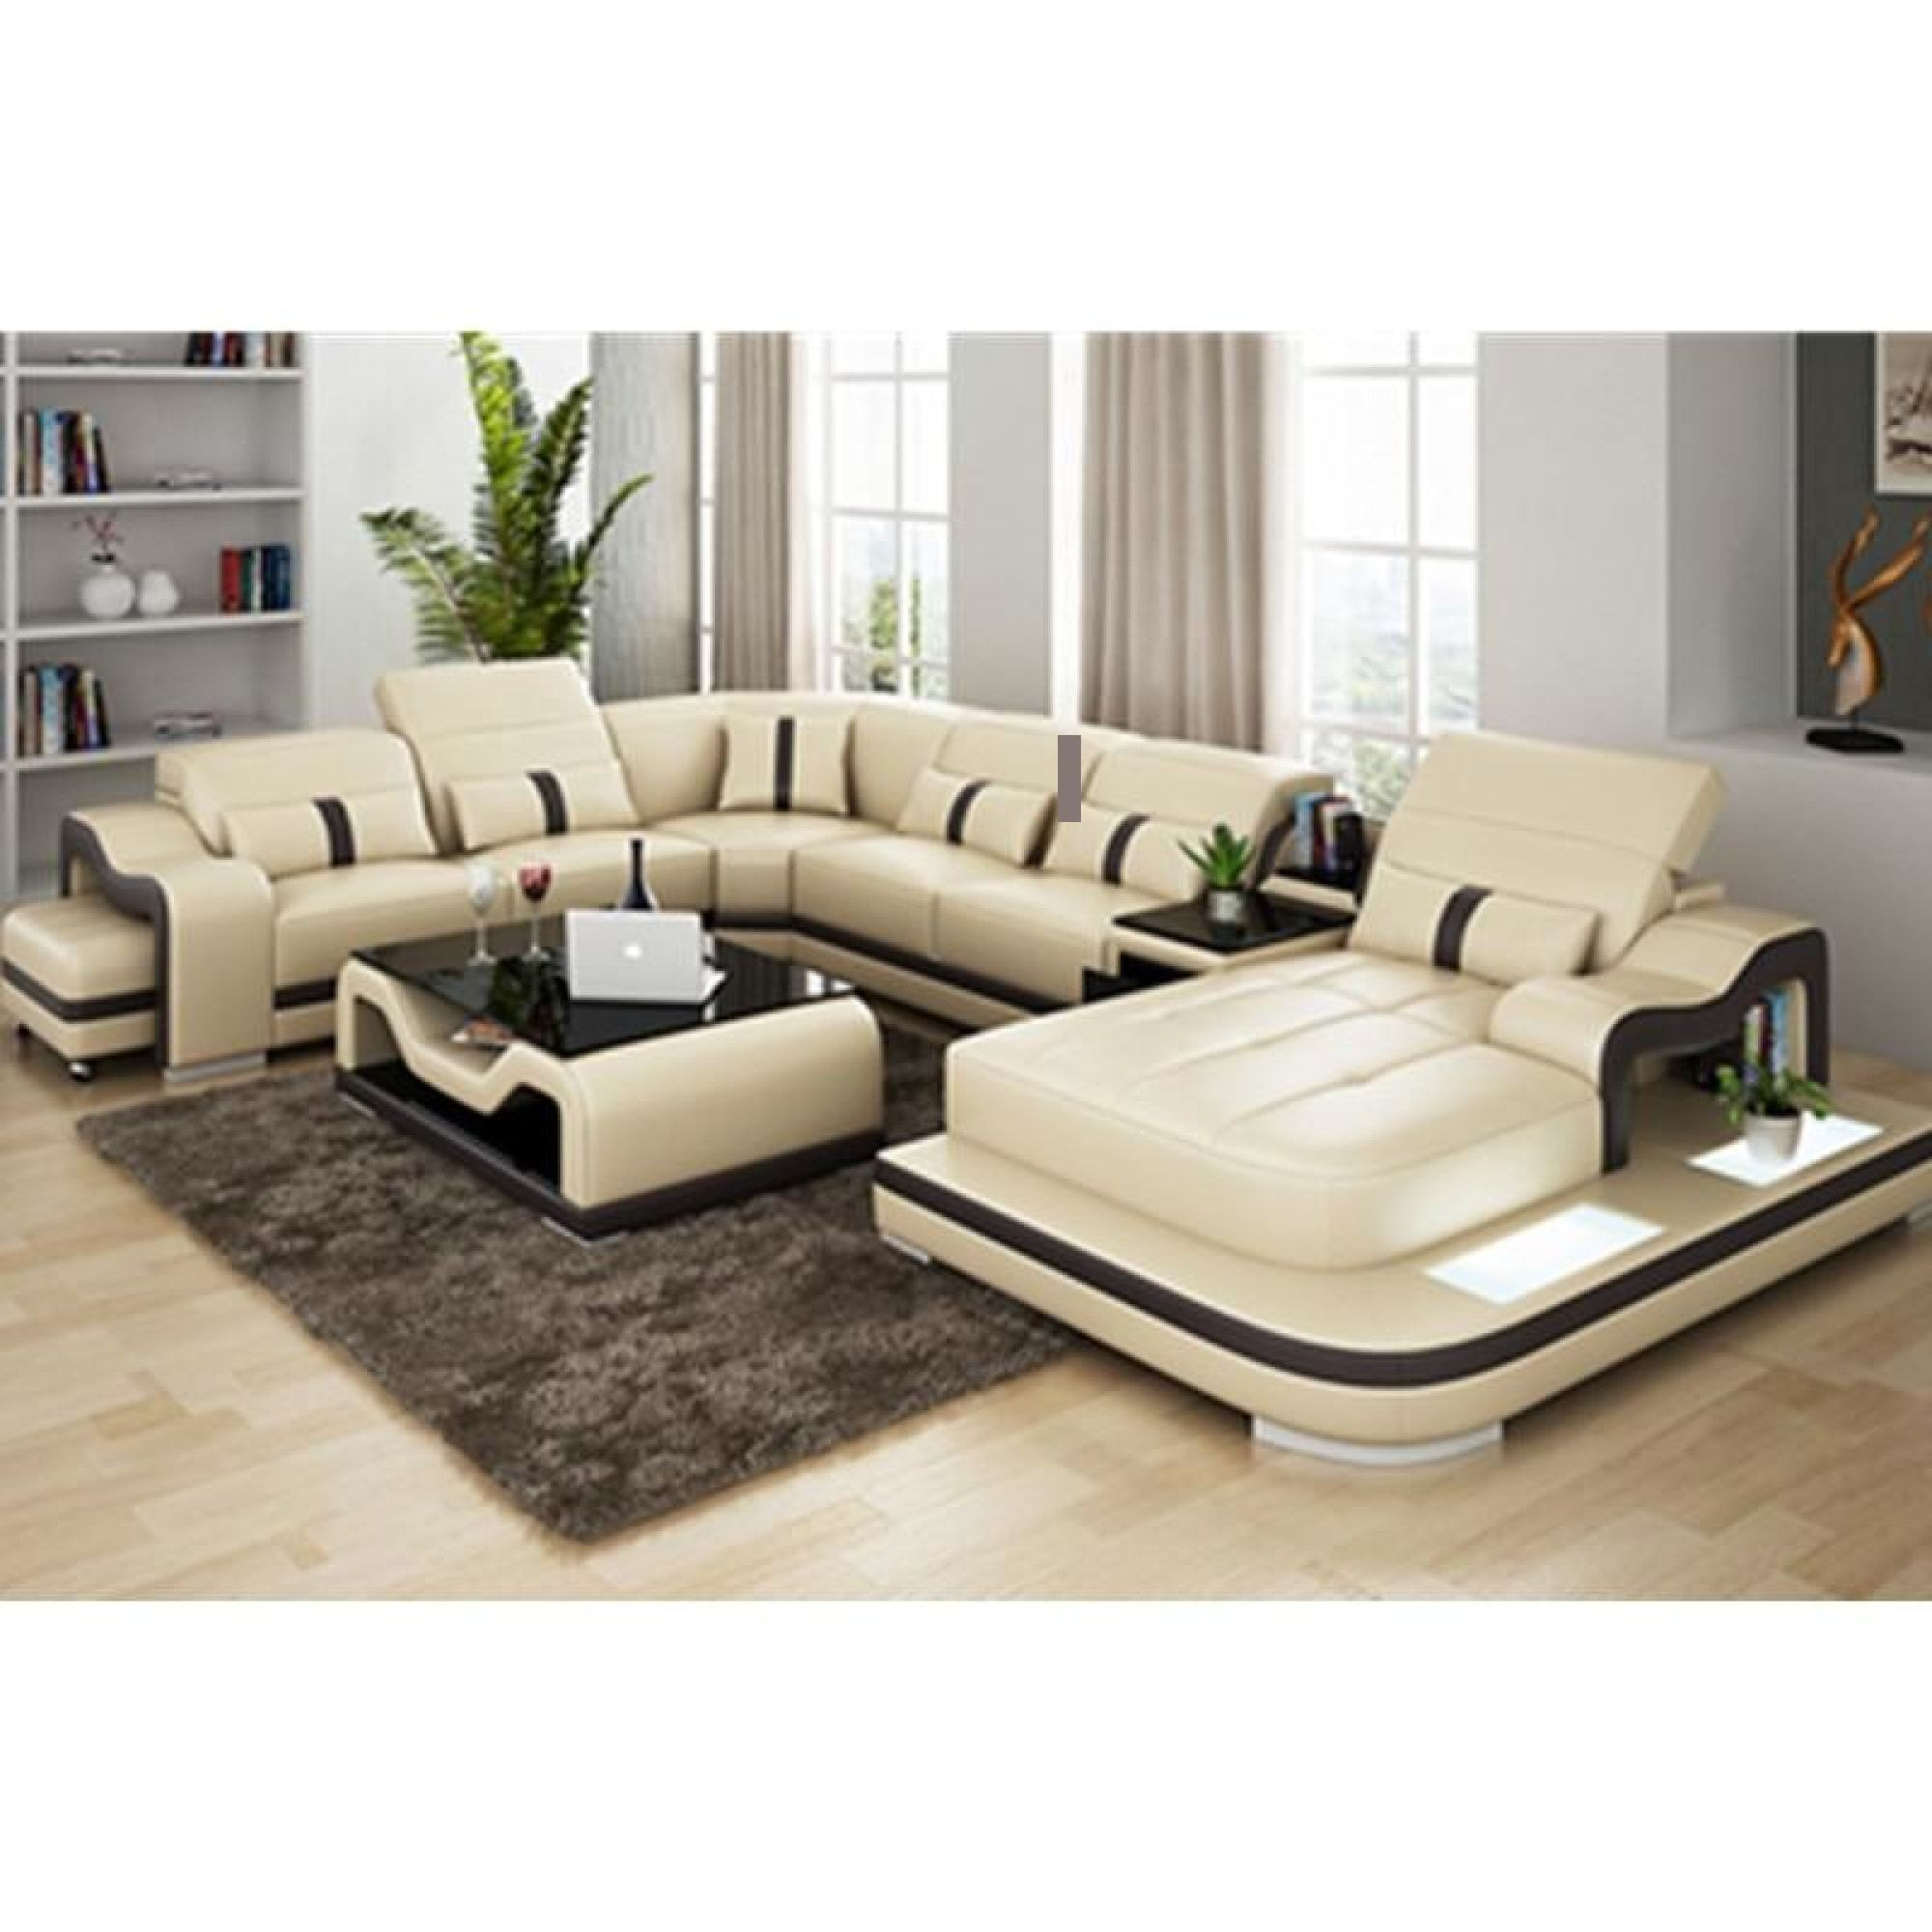 Leisure Style Luxury Sectional Sofa With Coffee Table For Home Furniture Living Room Sofa Design Corner Sofa Design Leather Sofa